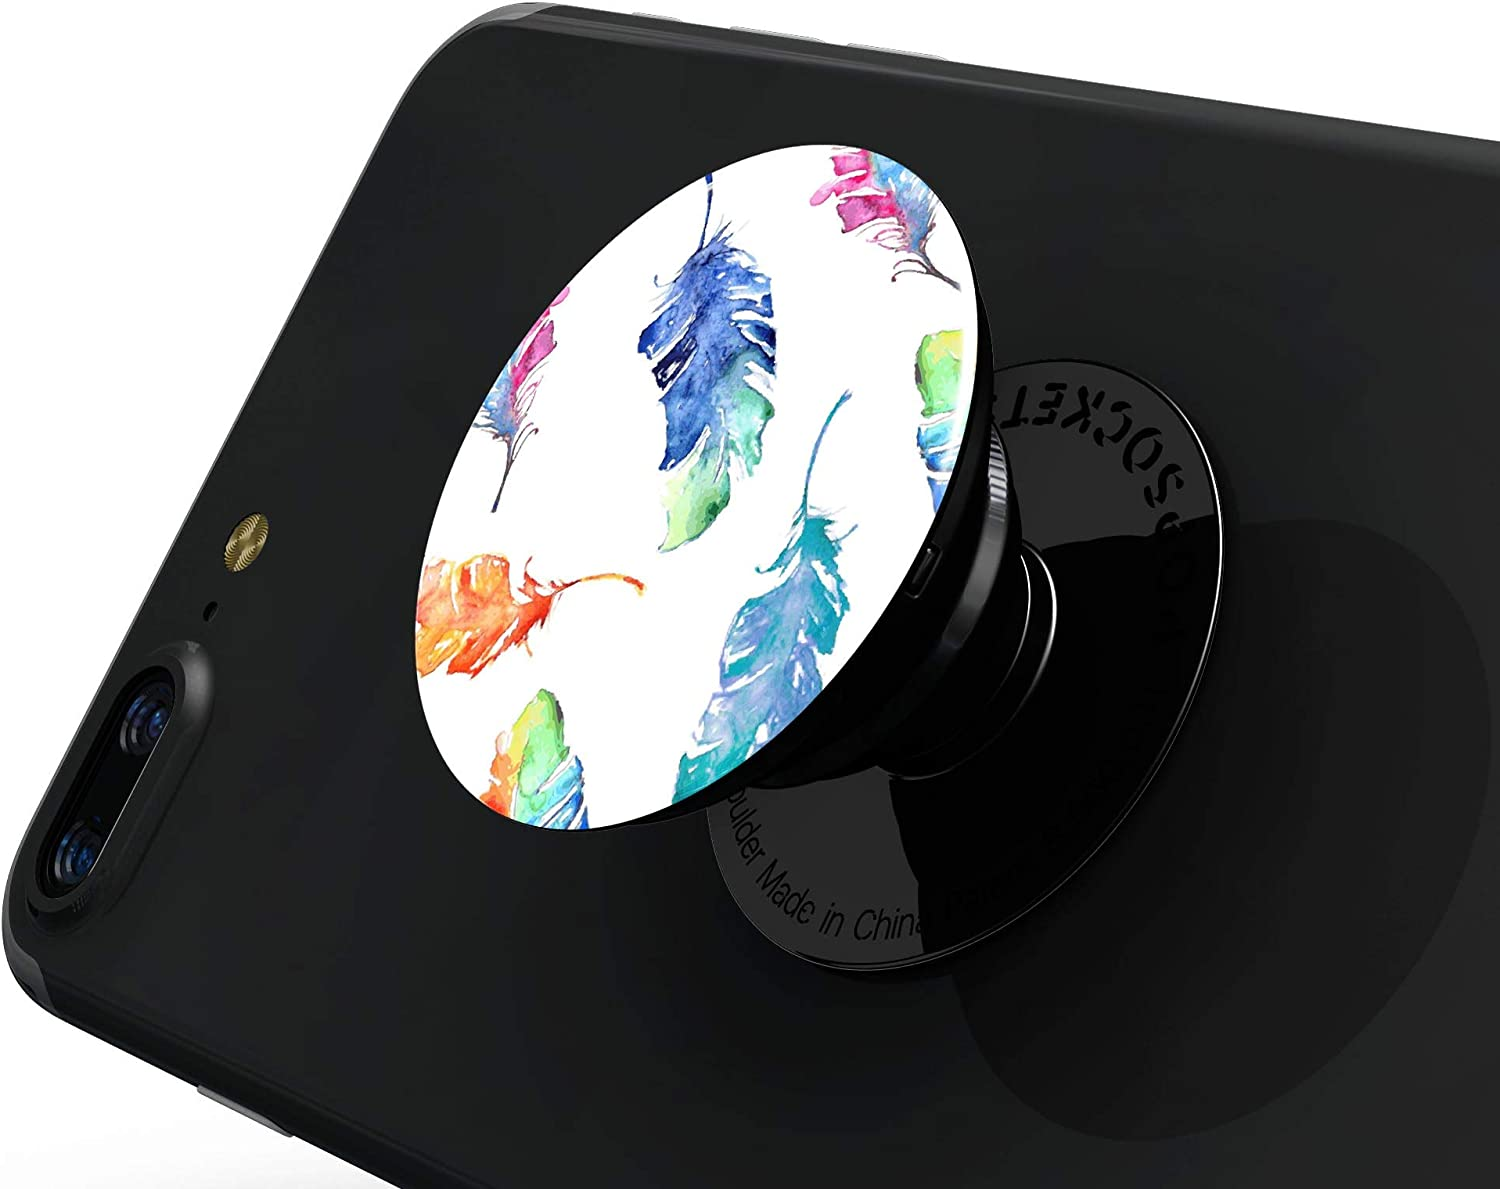 DesignSkinz Premium Decal Sticker Skin-Kit for PopSockets Smartphone Extendable Grip /& Stand Colorful Watercolor Feathers